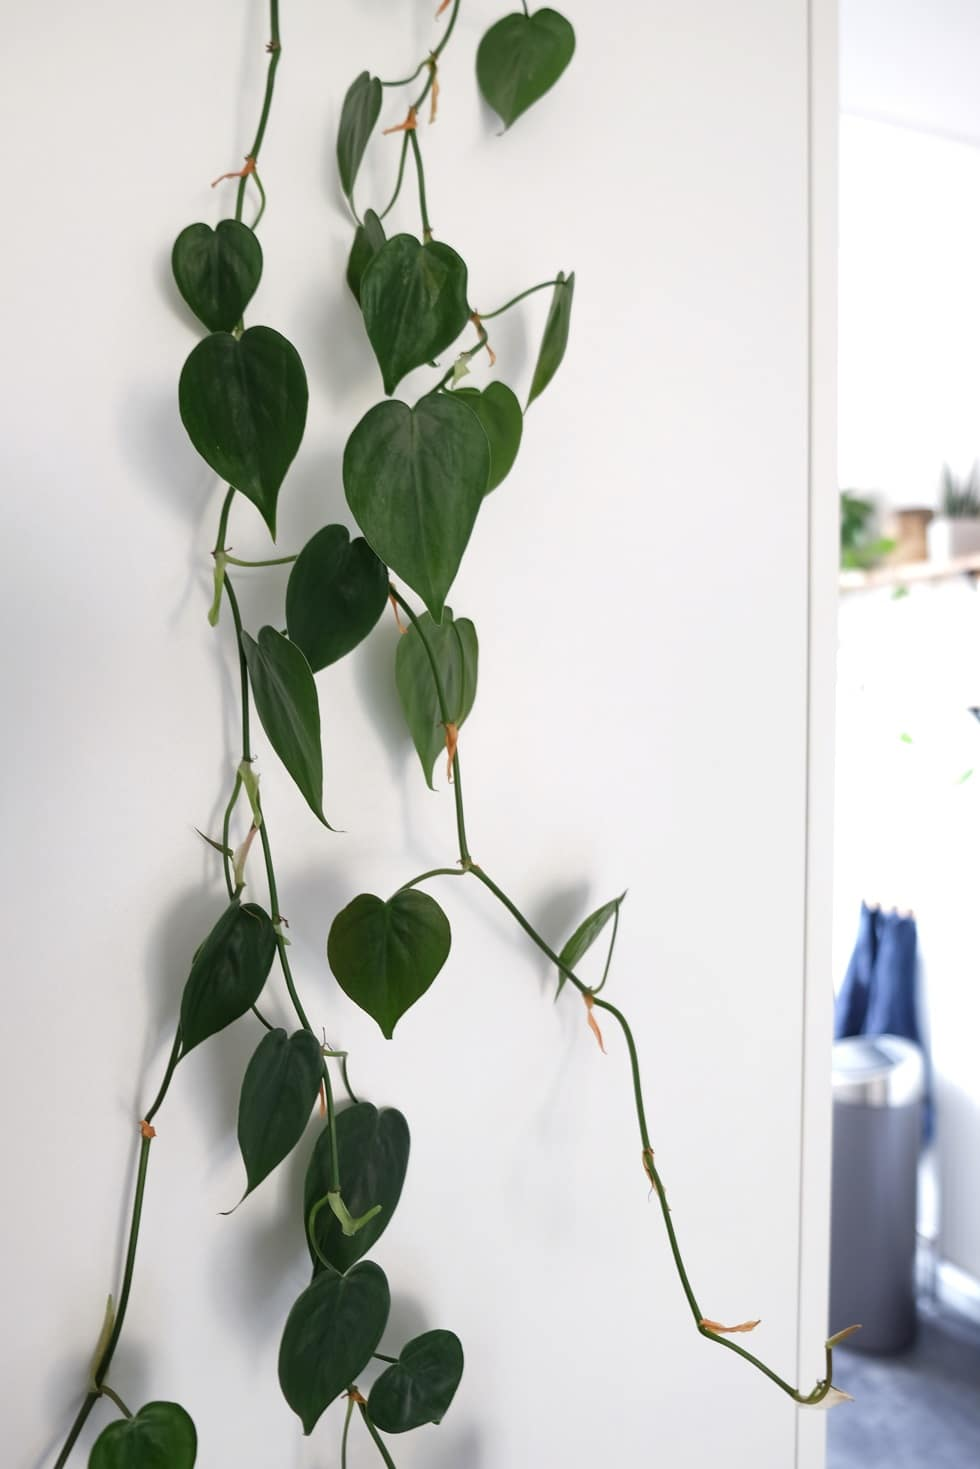 Philodendron verzorging